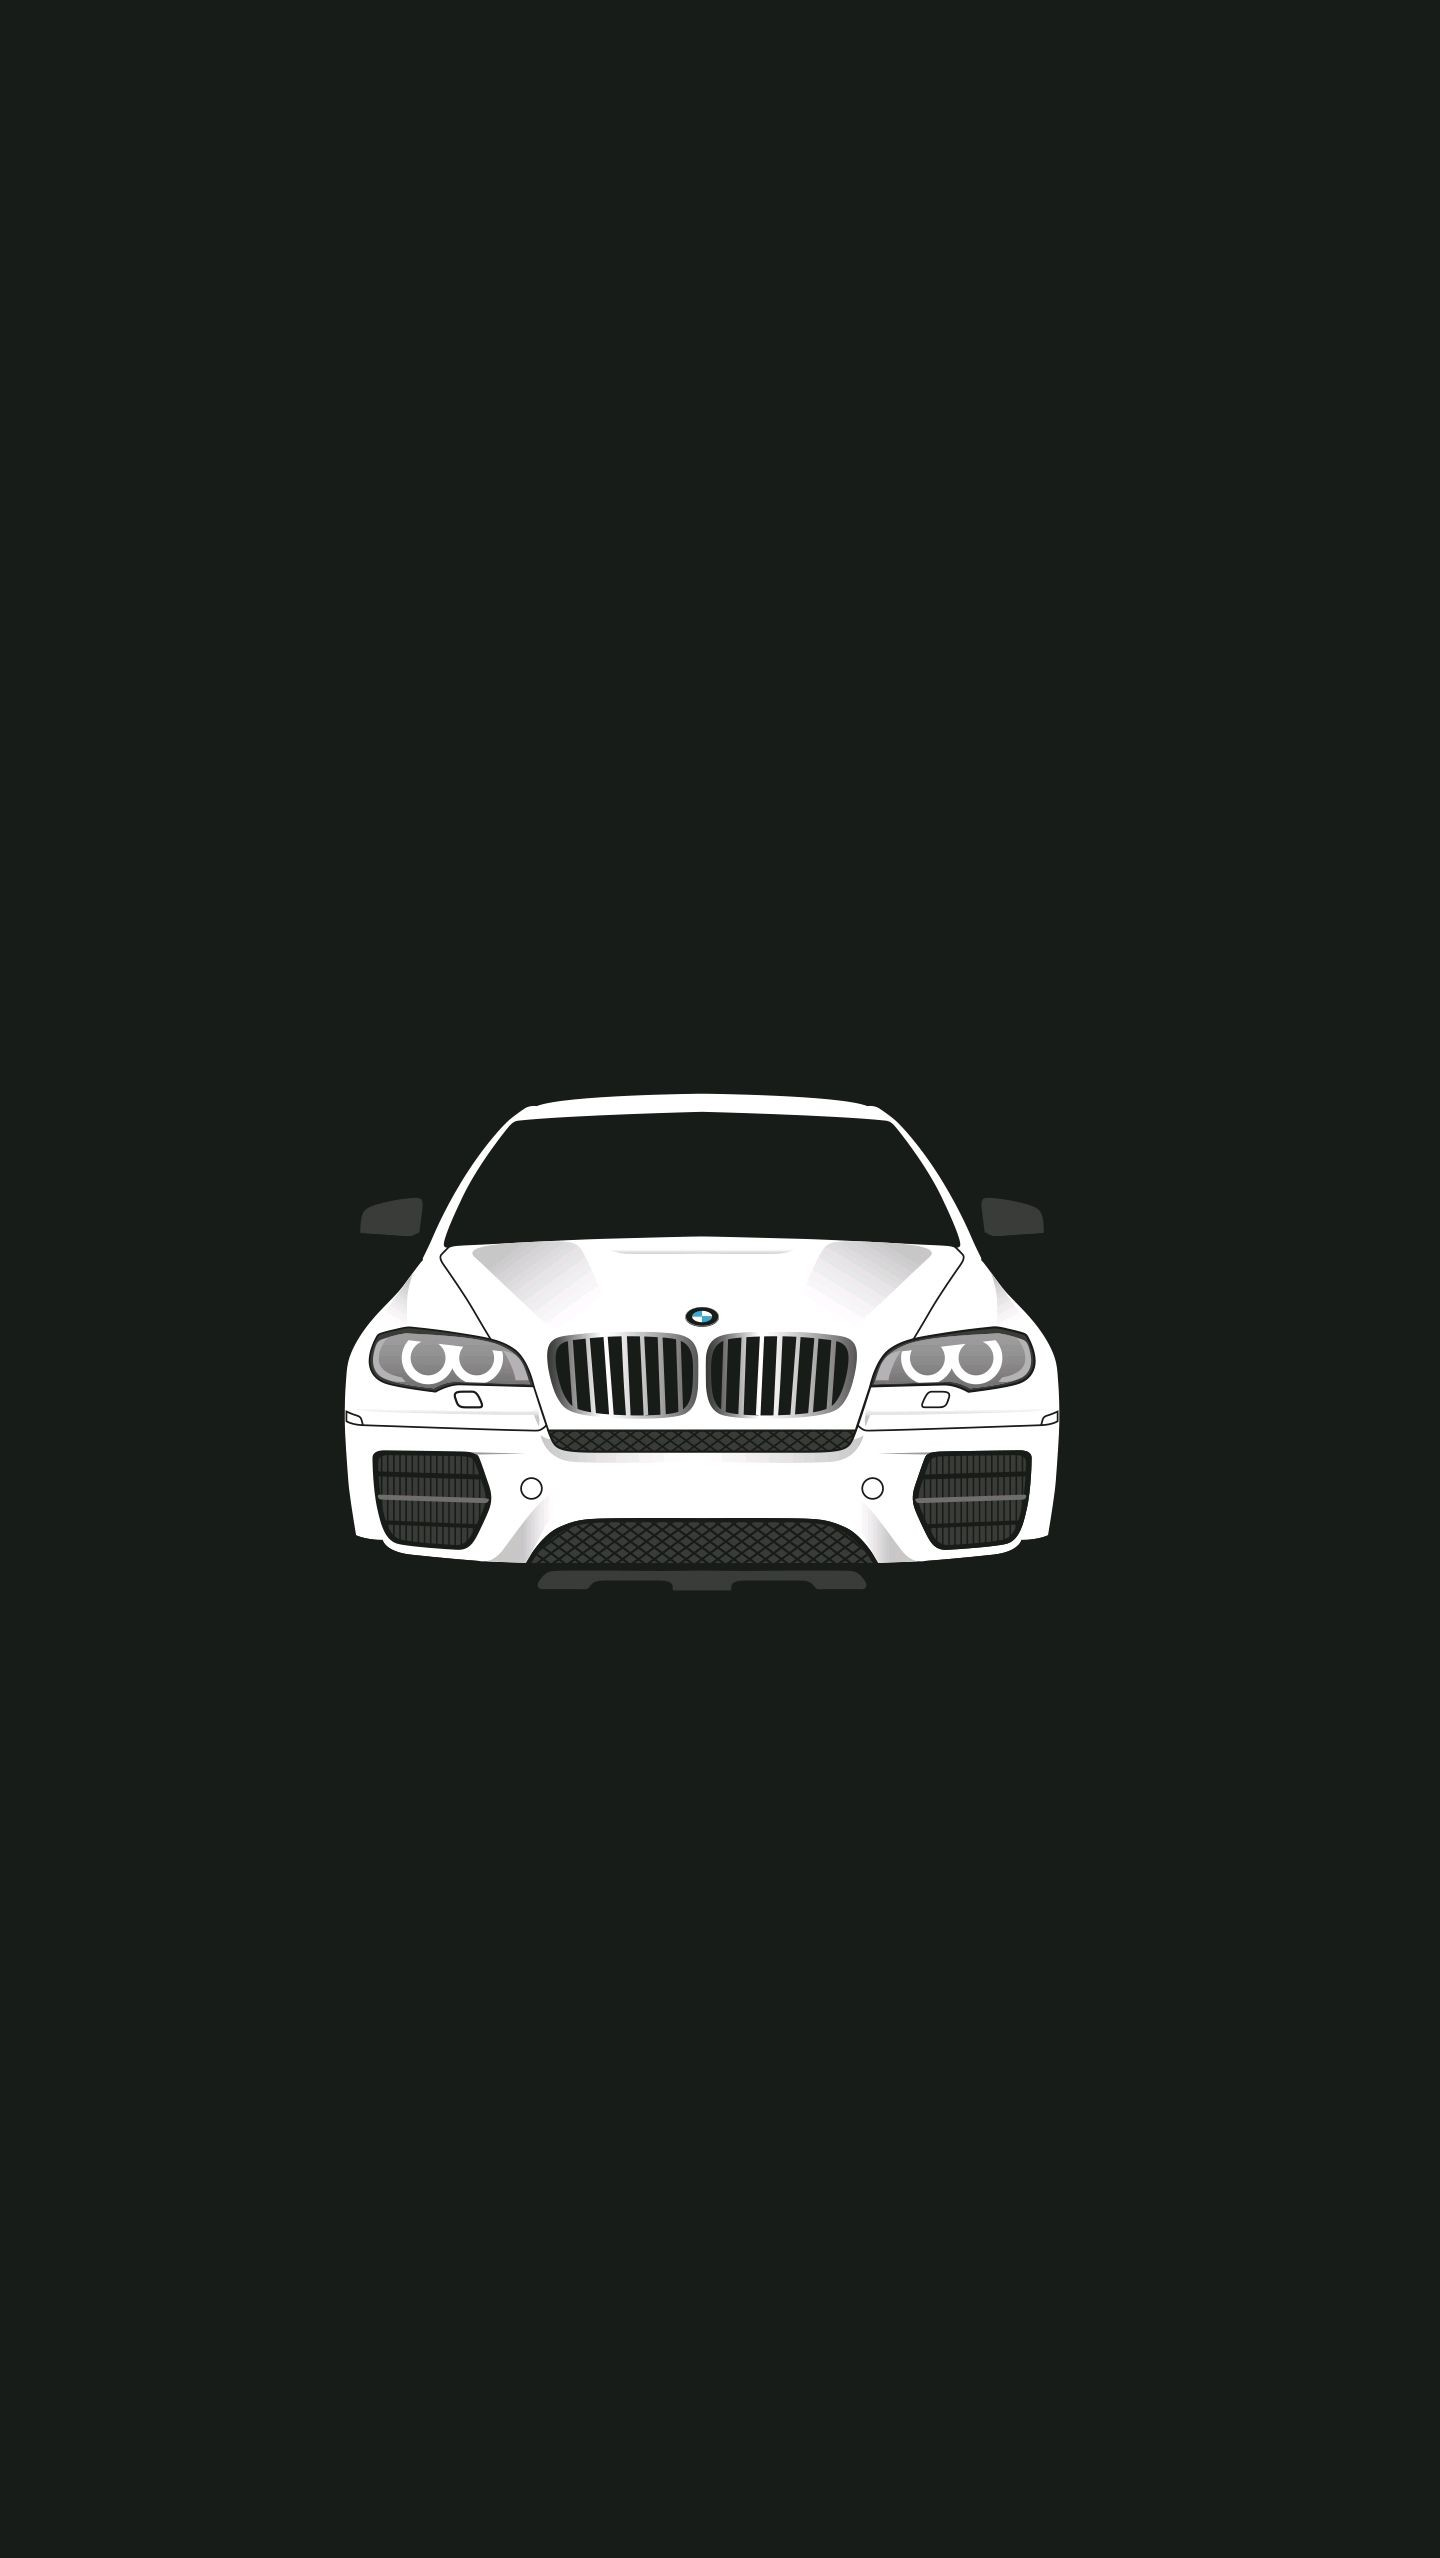 Wallpaper Iphone Black Bmw Car Wallpress Free Wallpaper Site